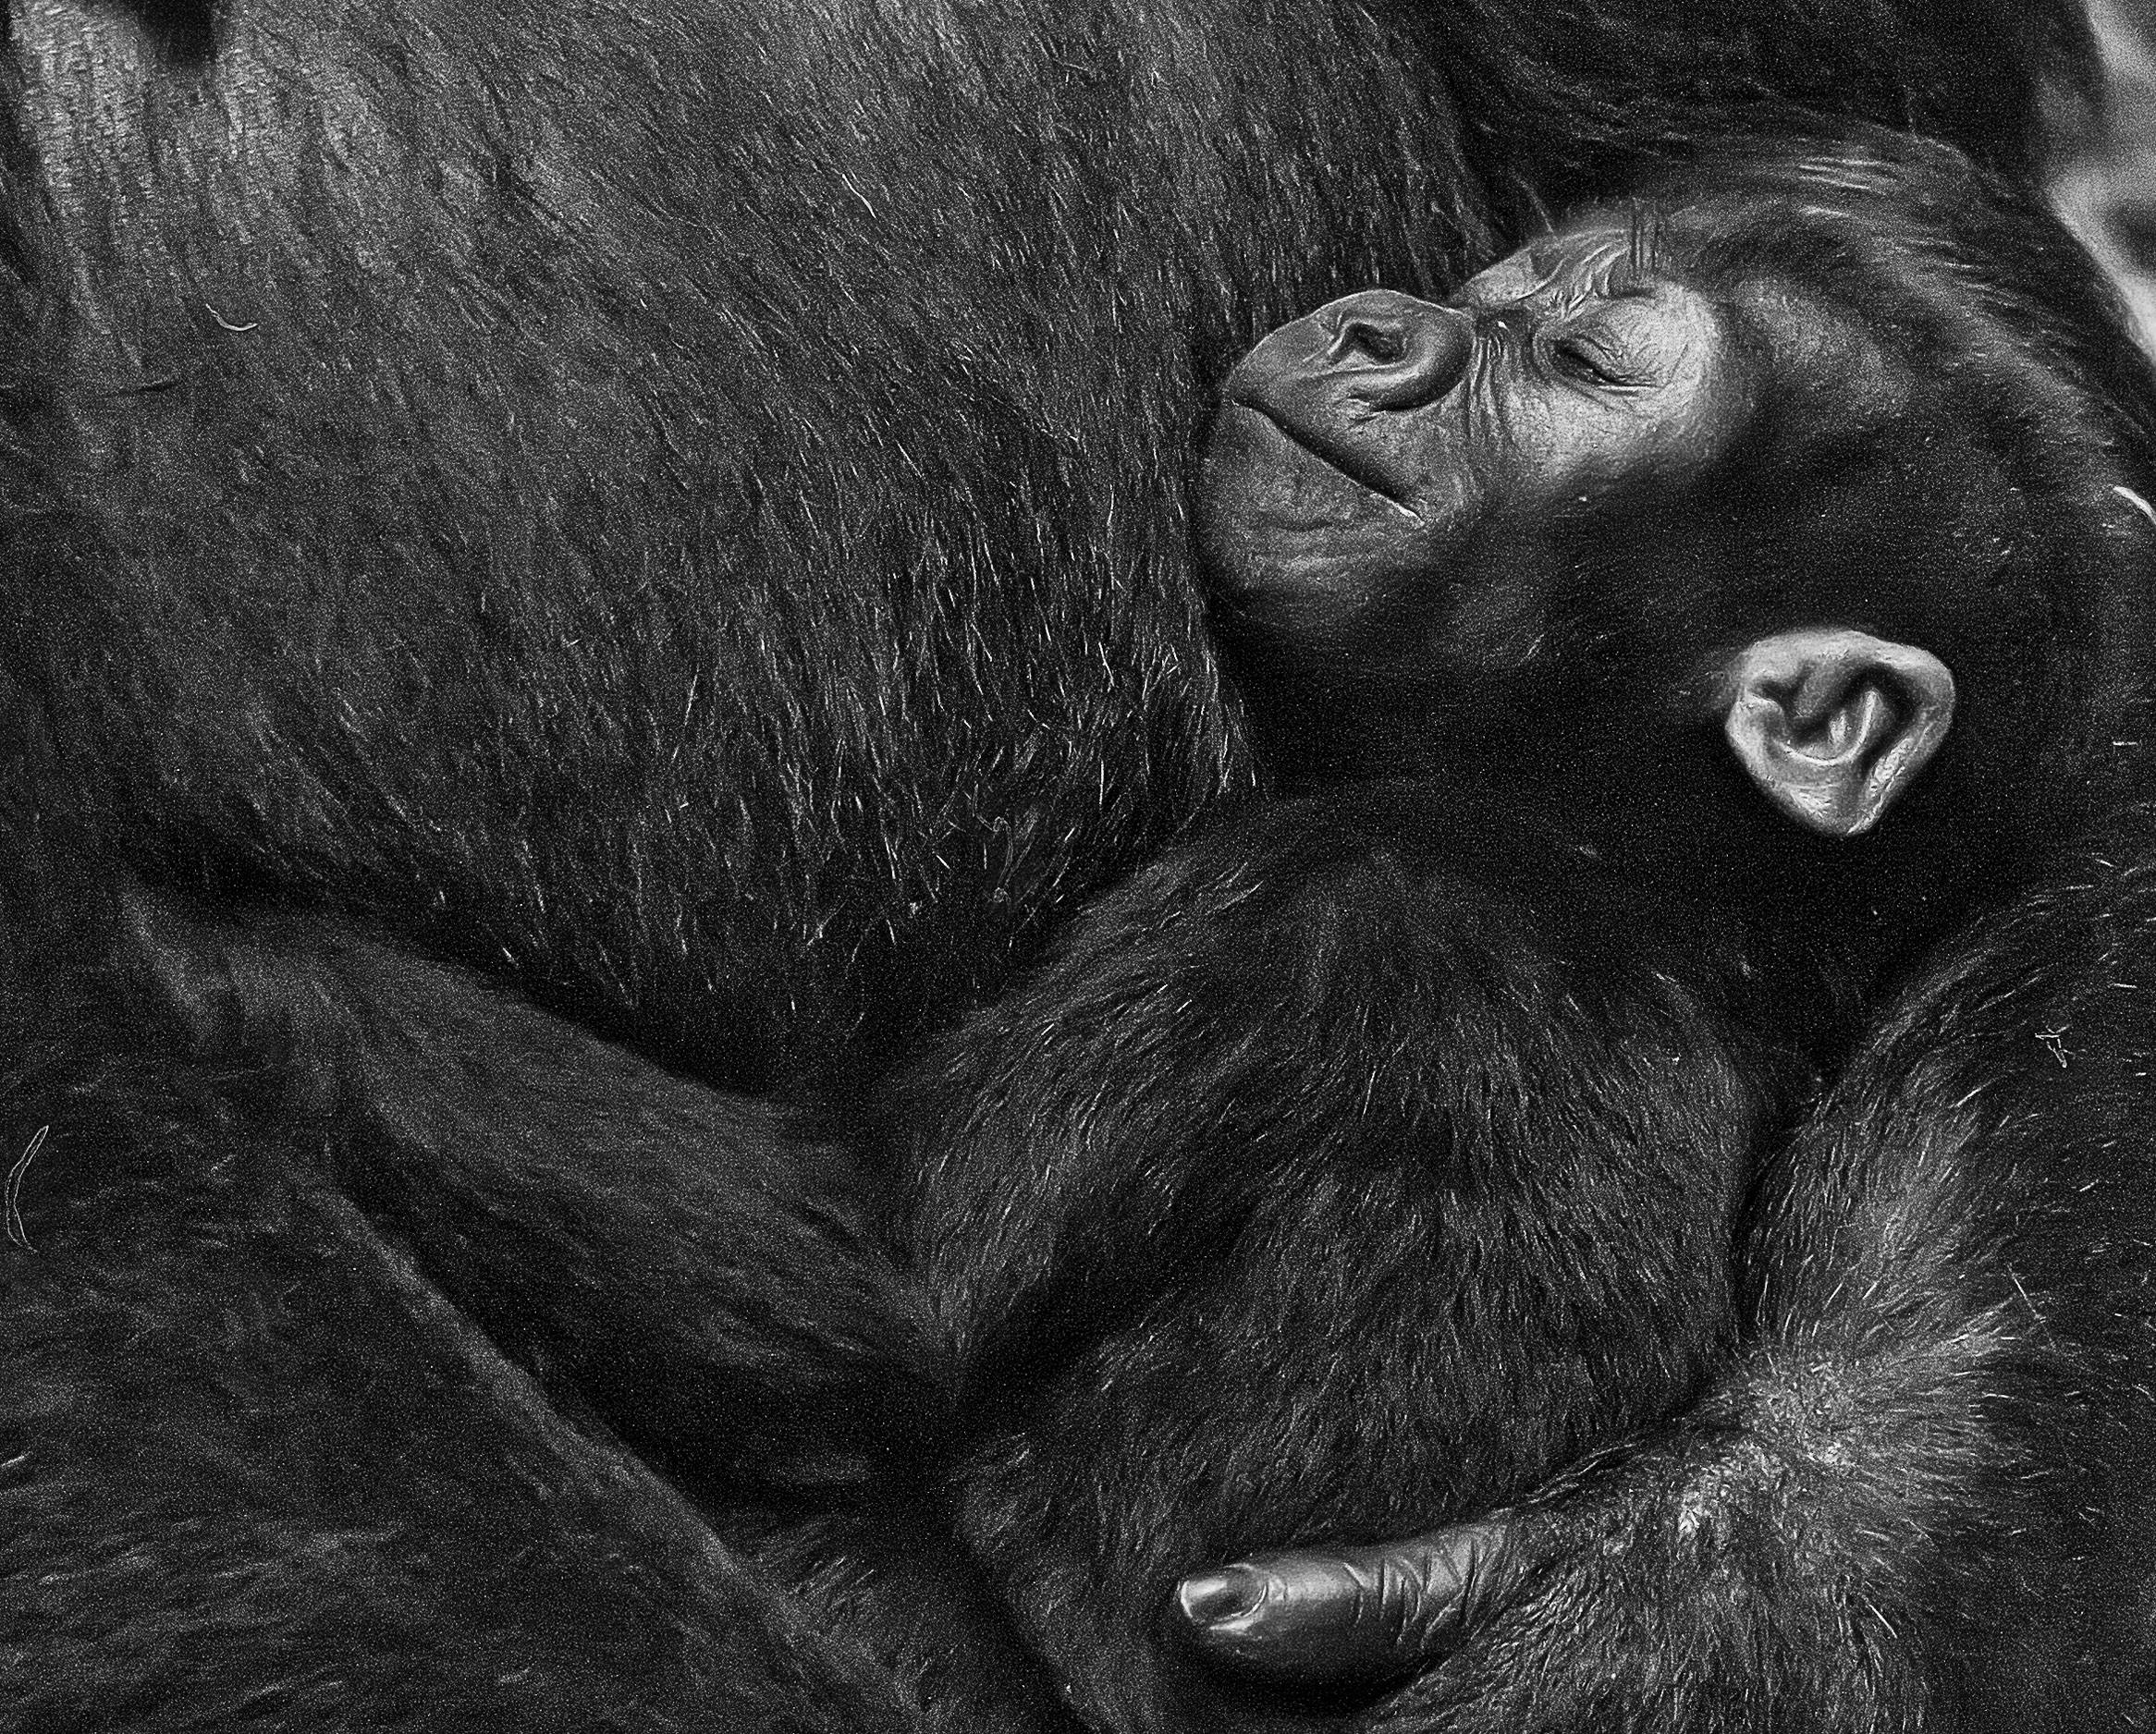 Nora was born at Brookfield Zoo last November. Mother seems to be very cautious about giving the public looks at Nora's face as she takes a nap cuddled in mom's arm.